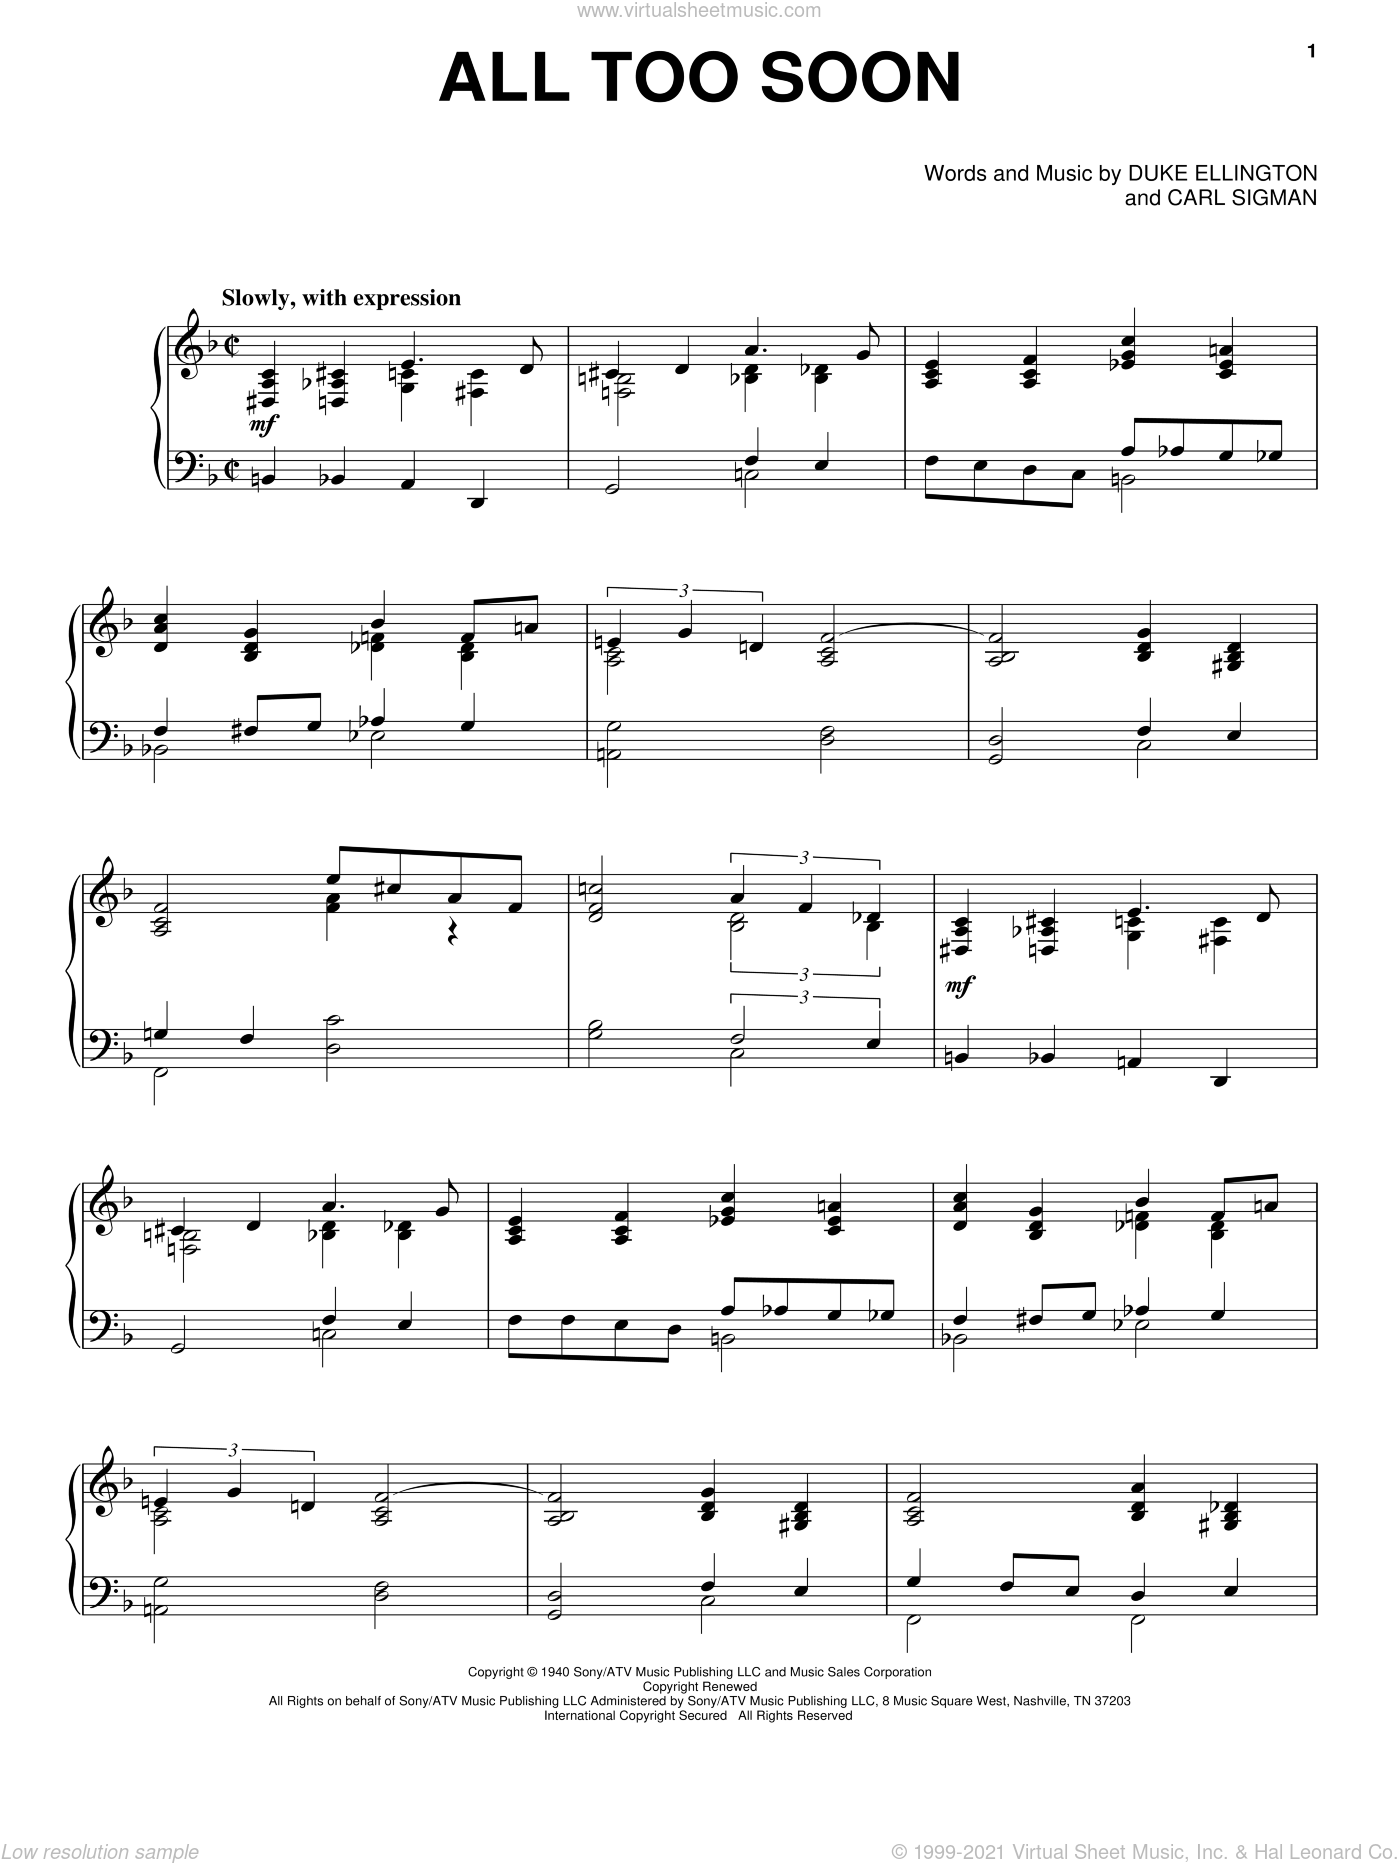 All Too Soon sheet music for voice, piano or guitar by Duke Ellington and Carl Sigman, intermediate. Score Image Preview.